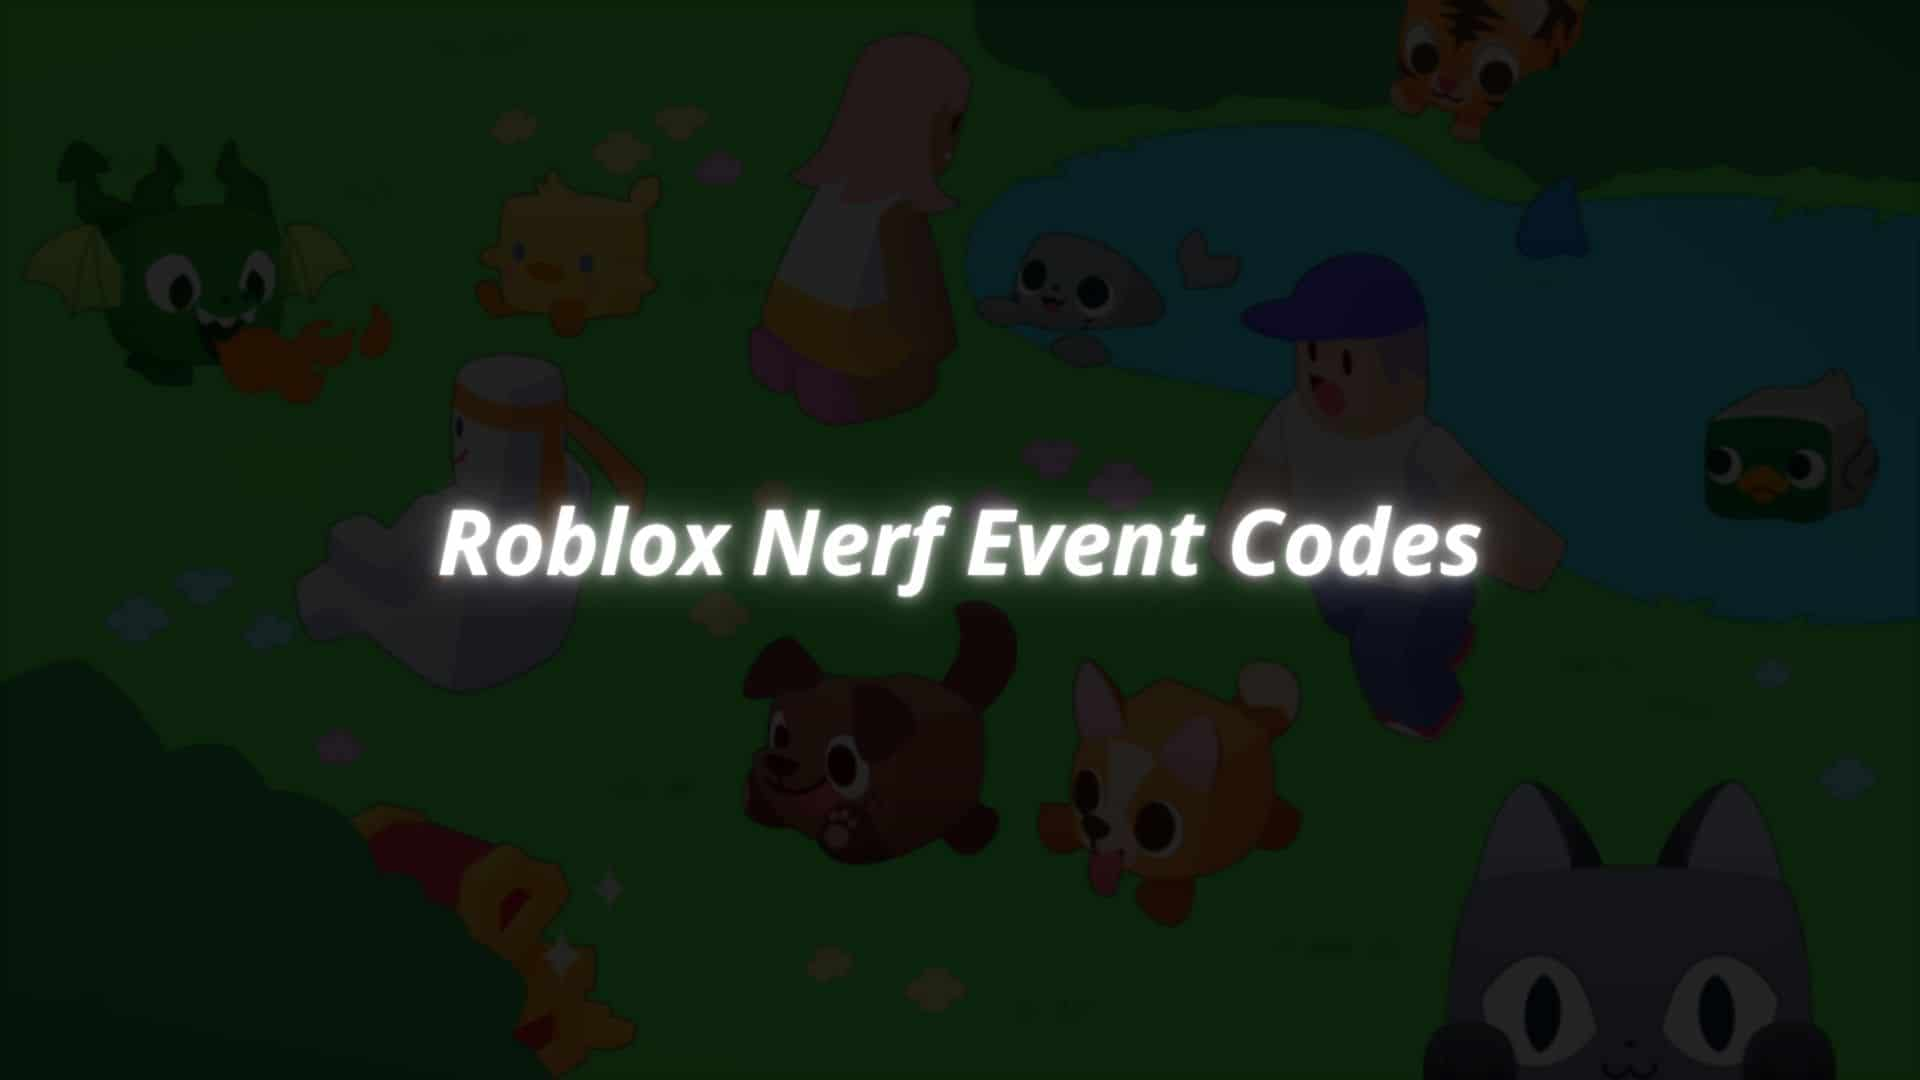 Roblox Nerf Event Codes